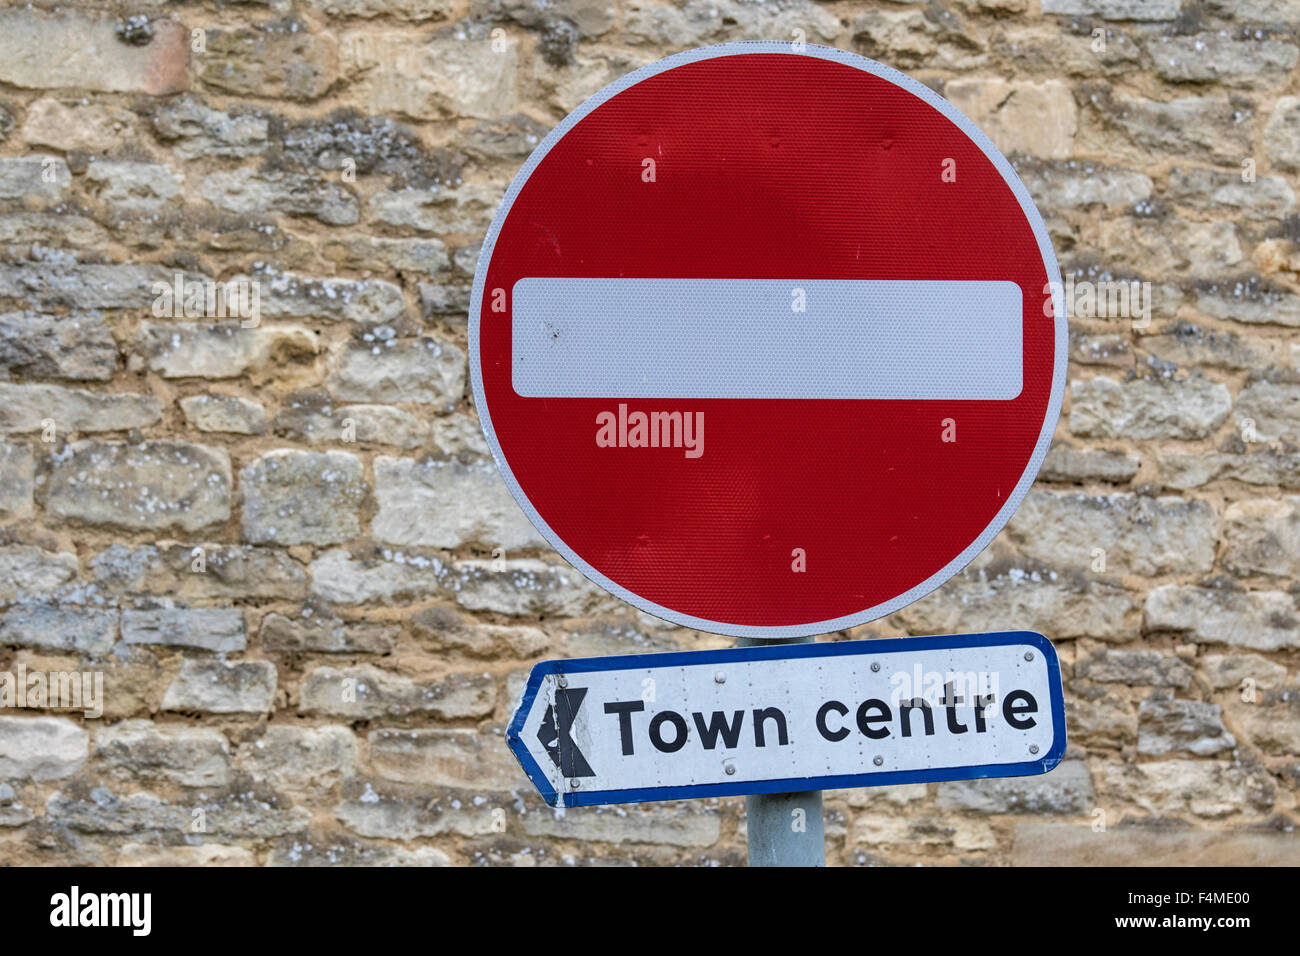 Pointing the way to the town centre via a no entry sign, England, UK - Stock Image